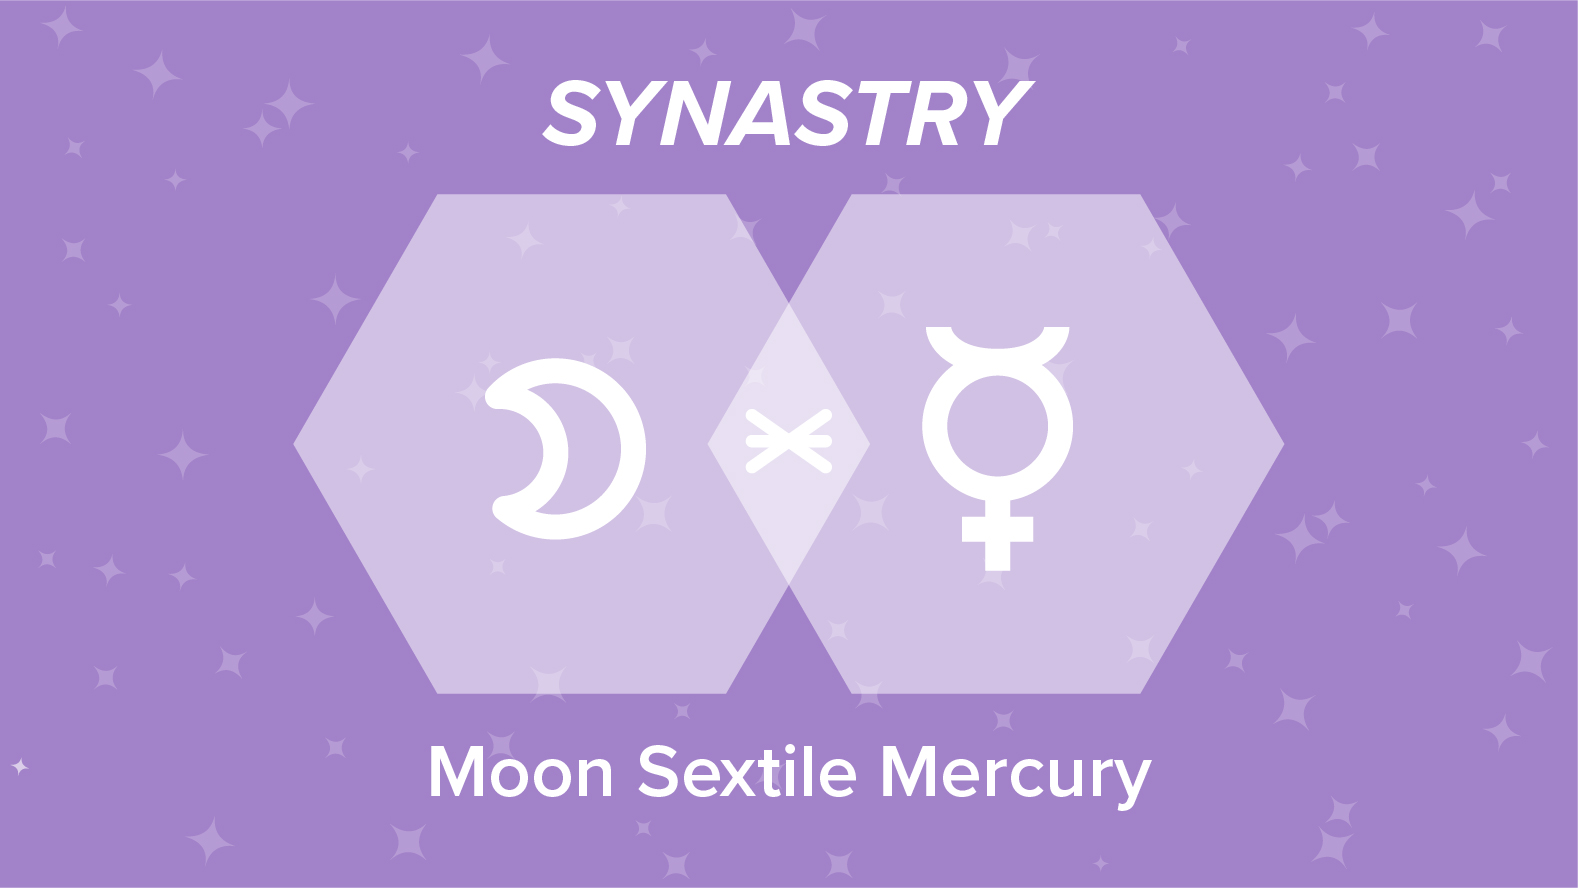 Moon Sextile Mercury Synastry: Relationships and Friendships Explained